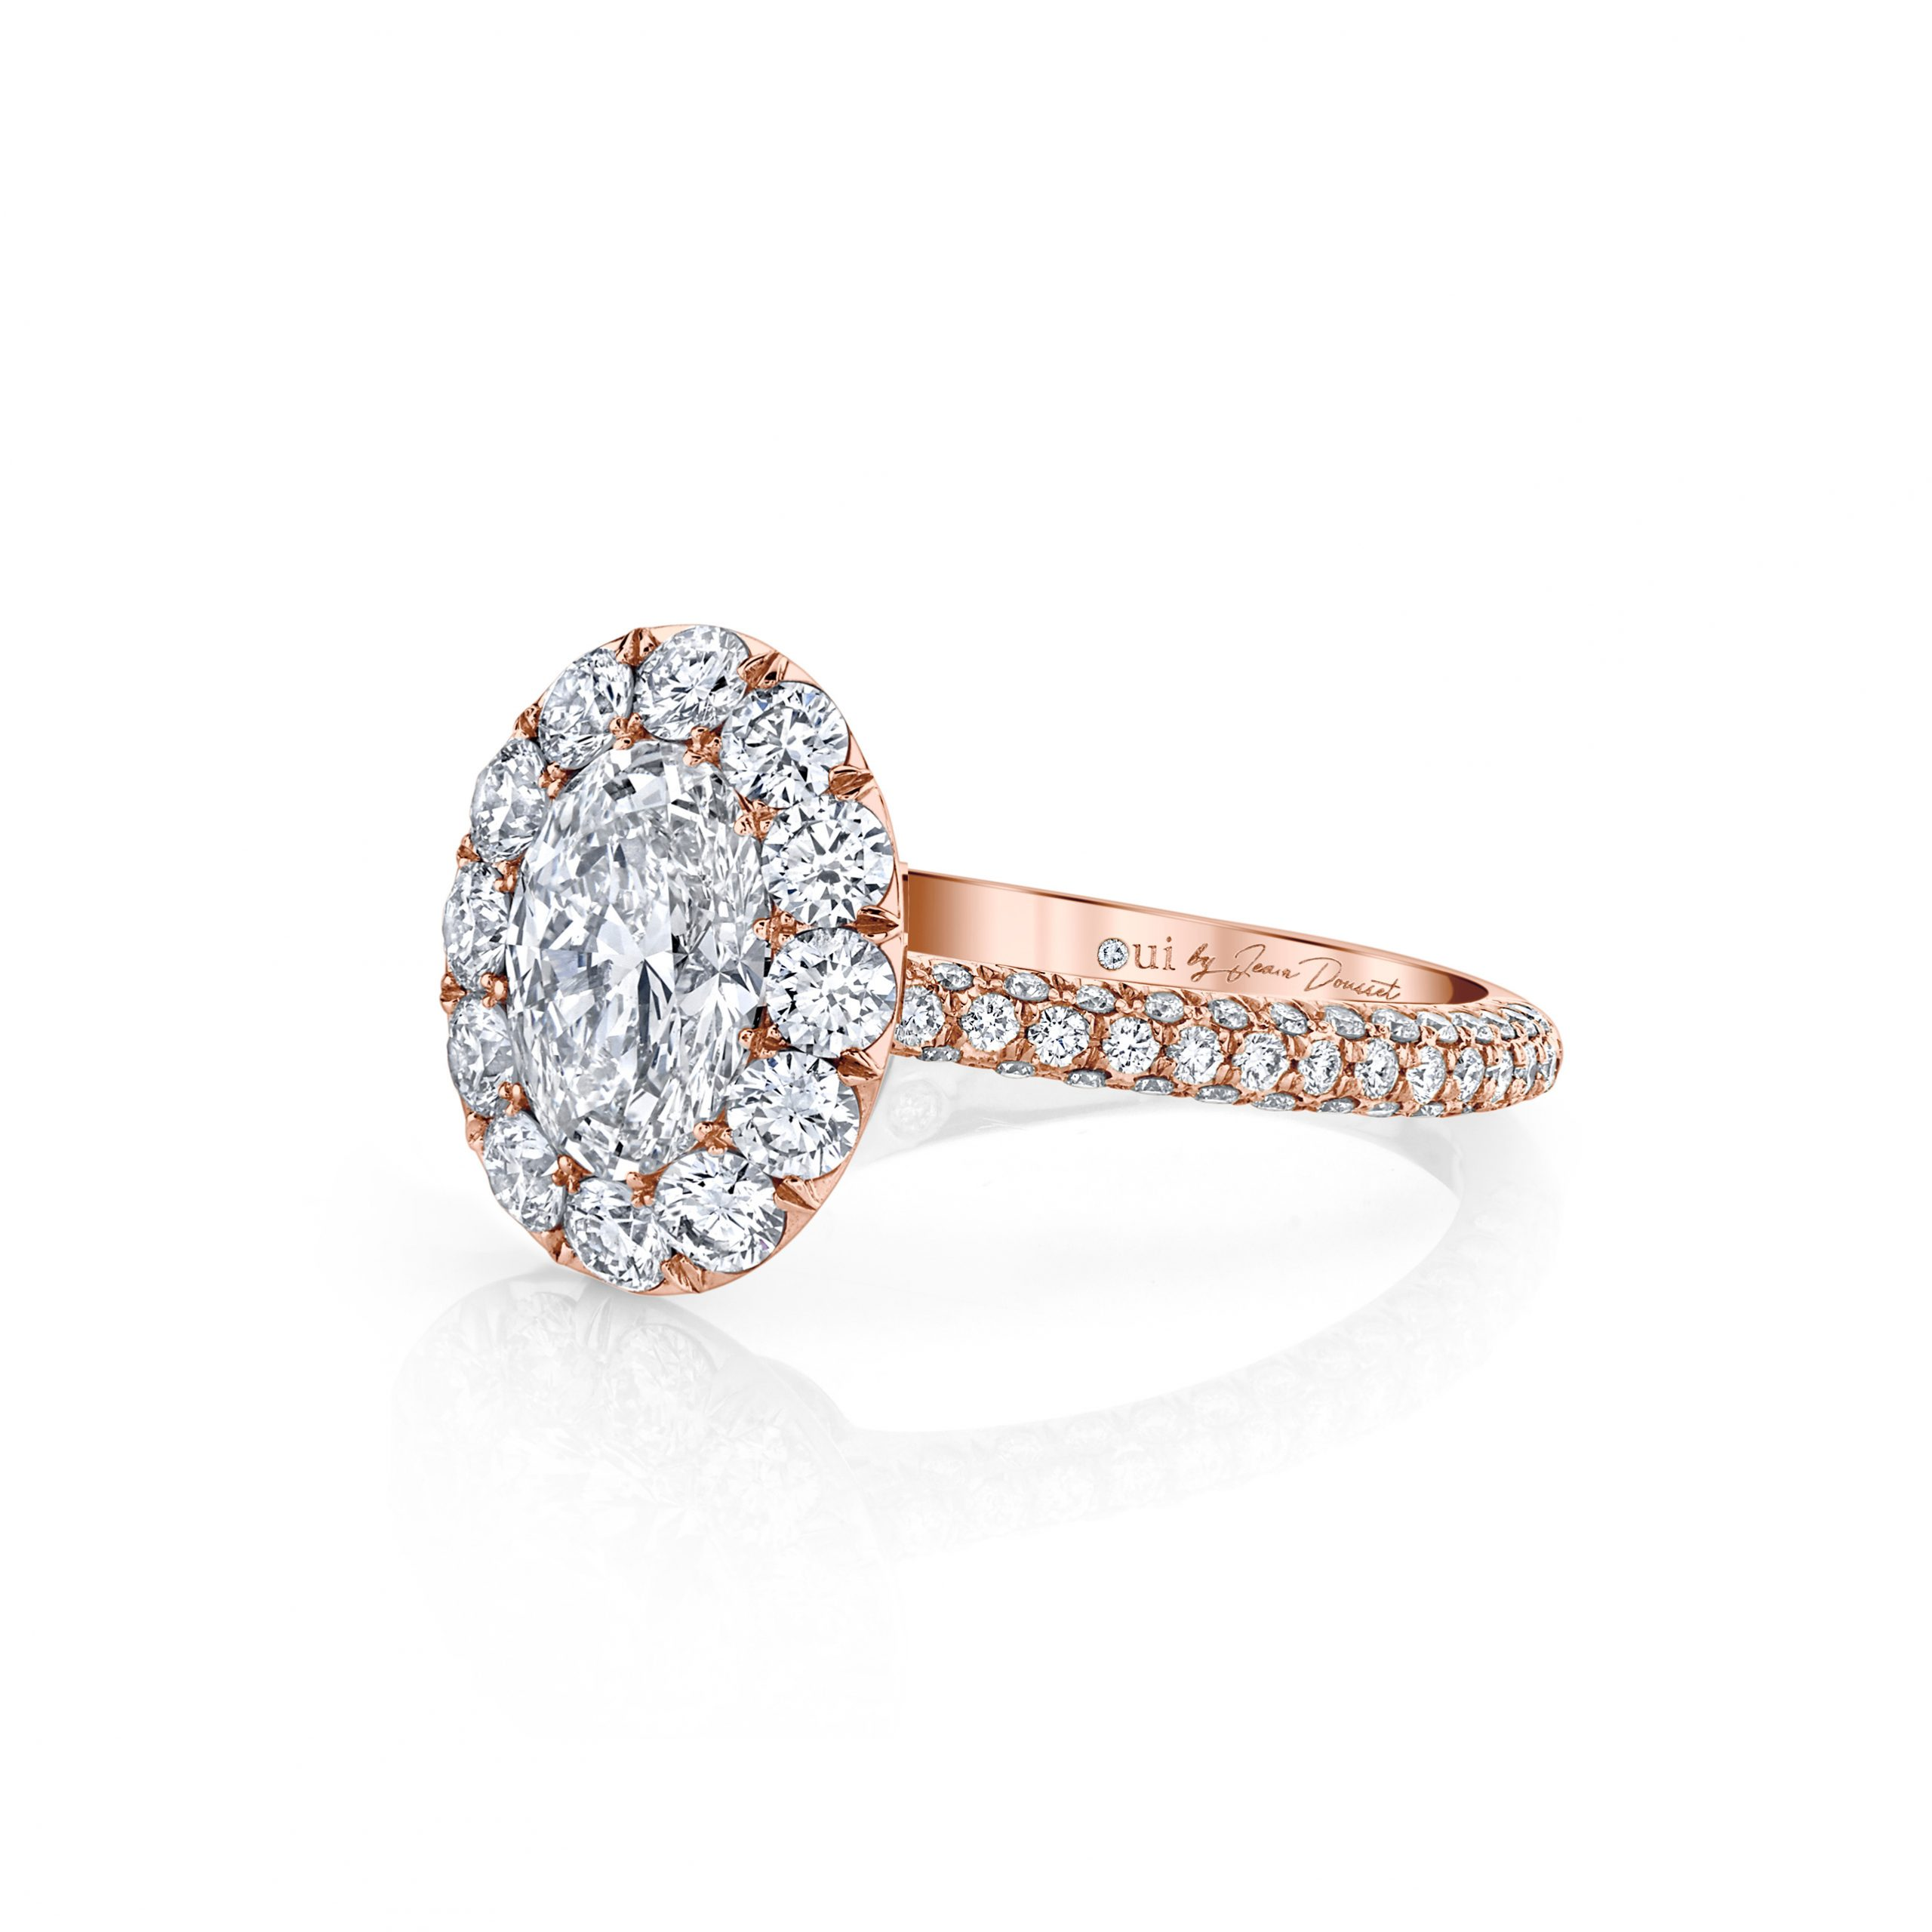 Jacqueline Floating Oval Seamless Solitaire® Engagement Ring with diamond pavé in 18k Rose Gold Side View by Oui by Jean Dousset